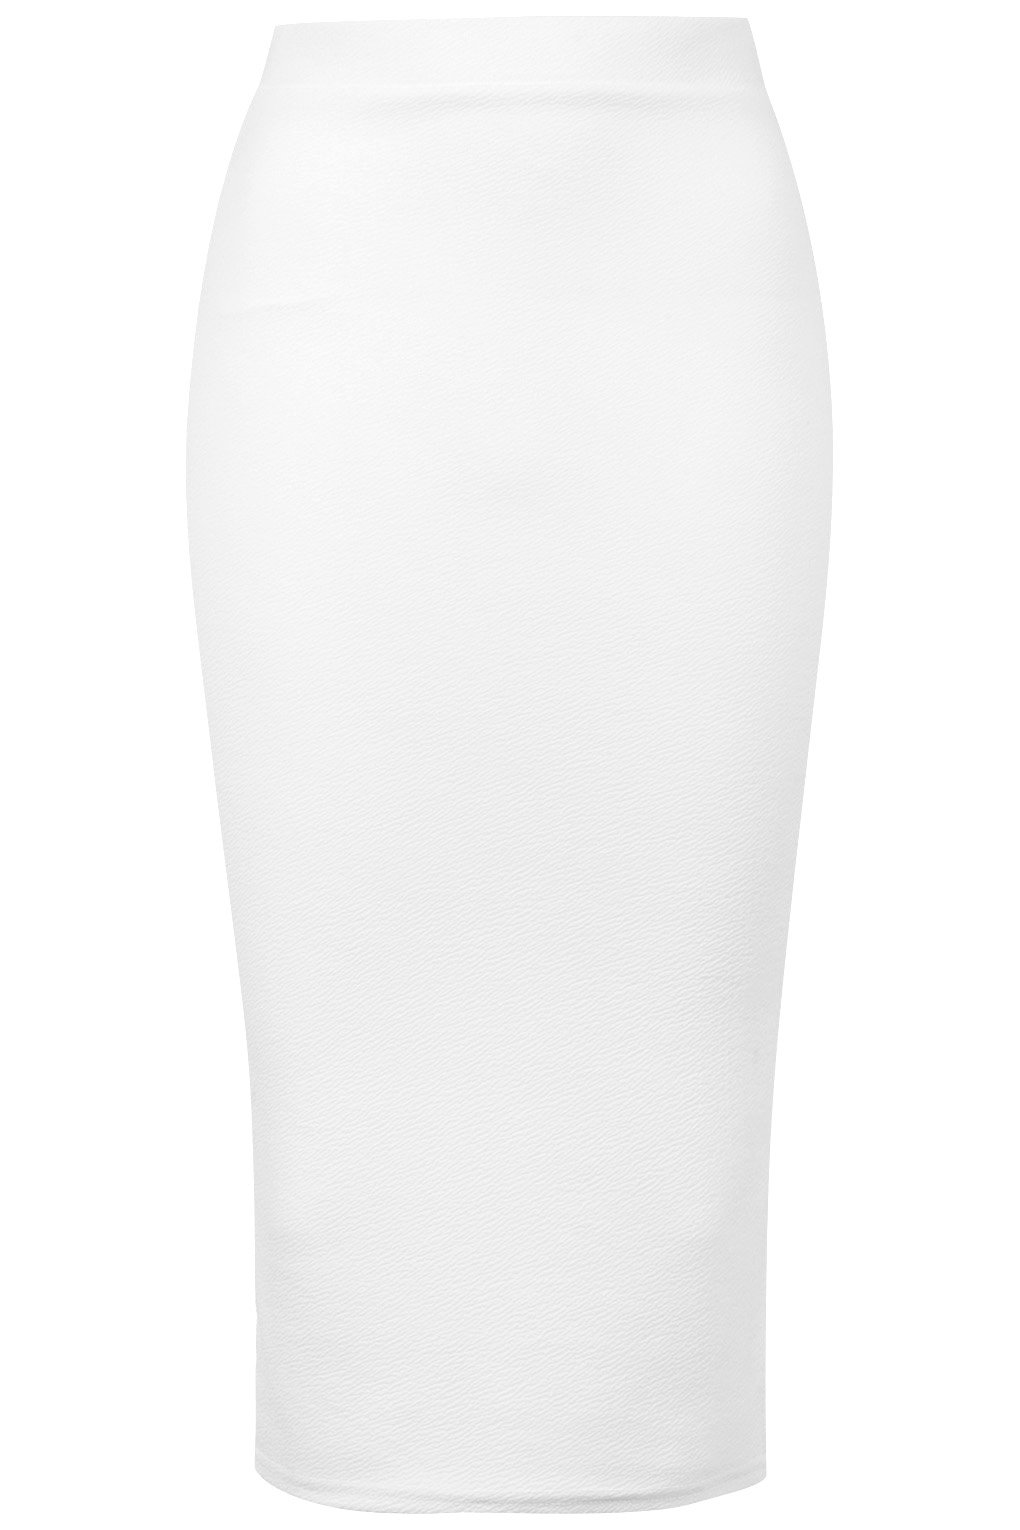 **Rika Bodycon Skirt by TFNC - Brands at Topshop - Clothing